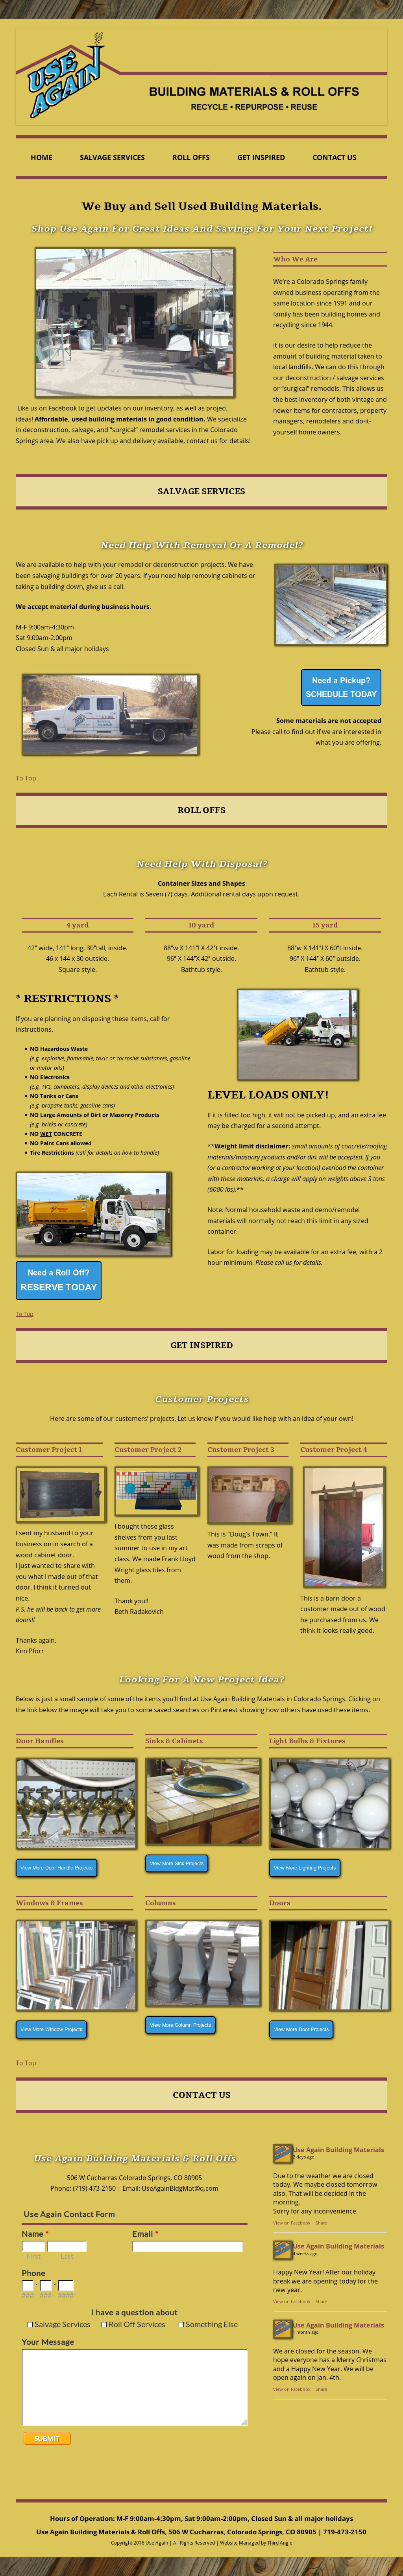 Use Again Building Materials Competitors, Revenue and